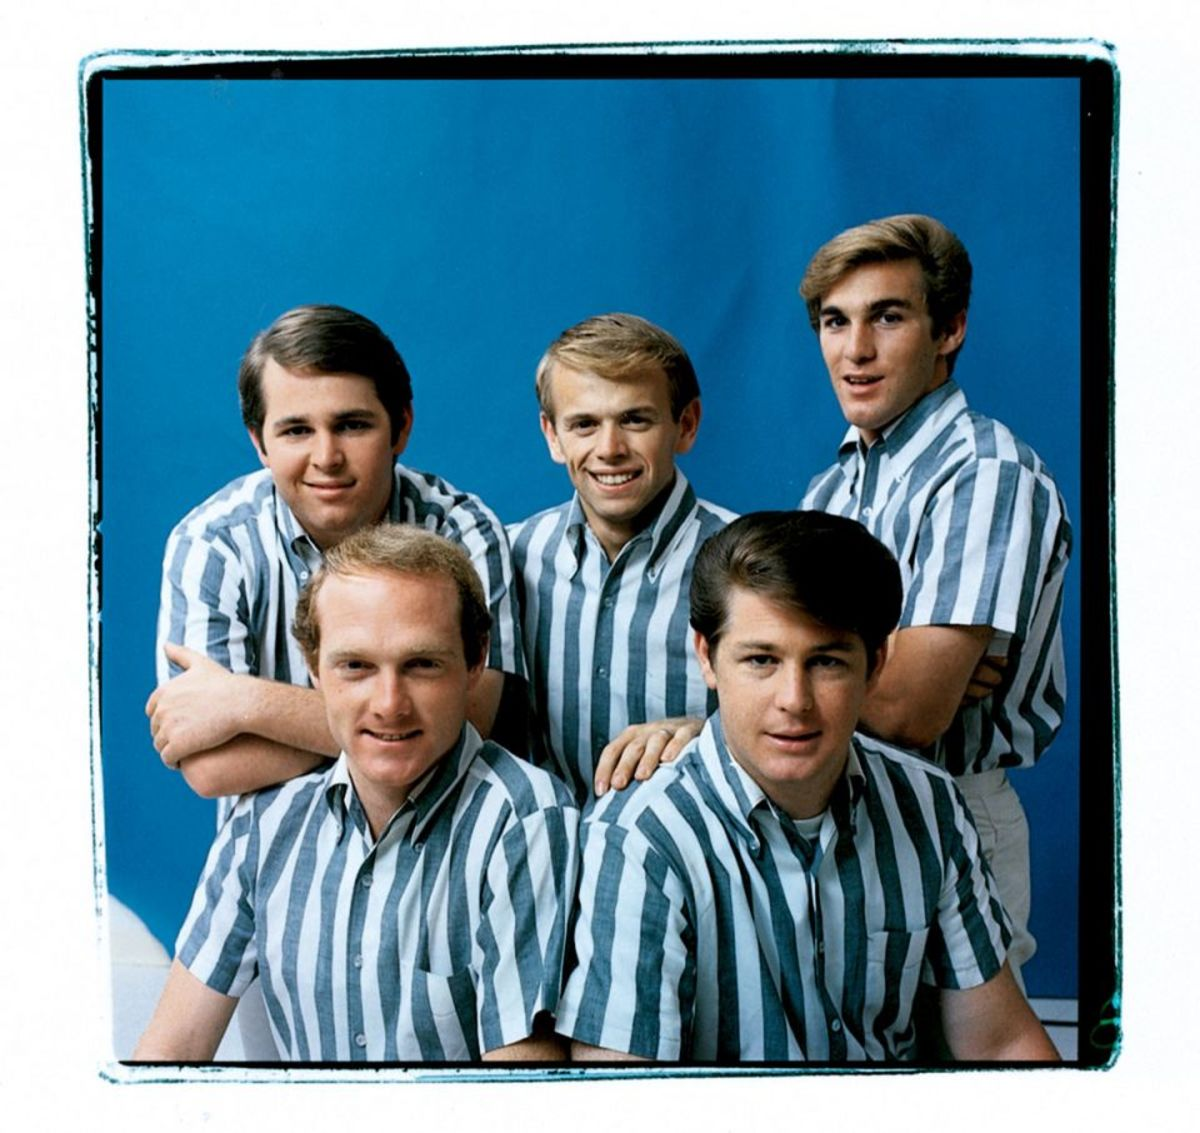 Ten Things You Probably Didn't Know About the Beach Boys